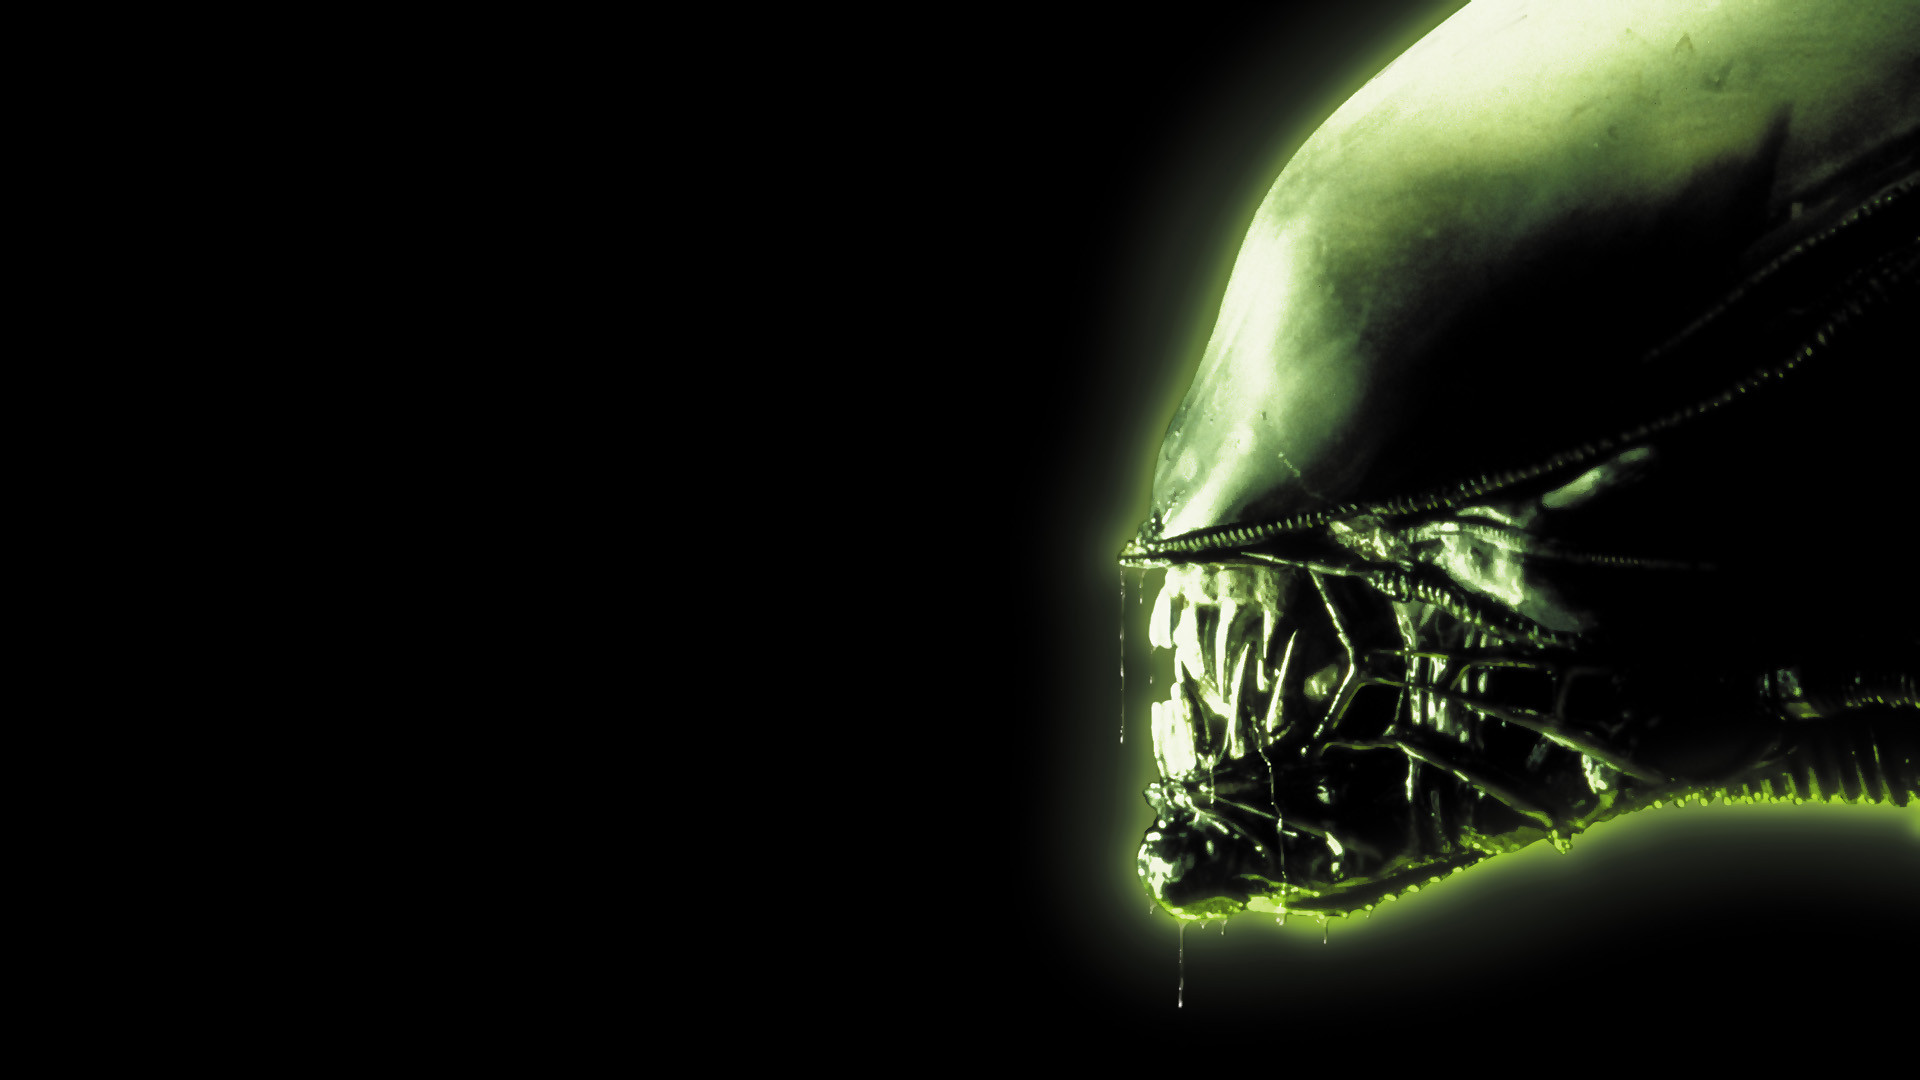 ALIEN images Alien HD wallpaper and background photos 1920x1080